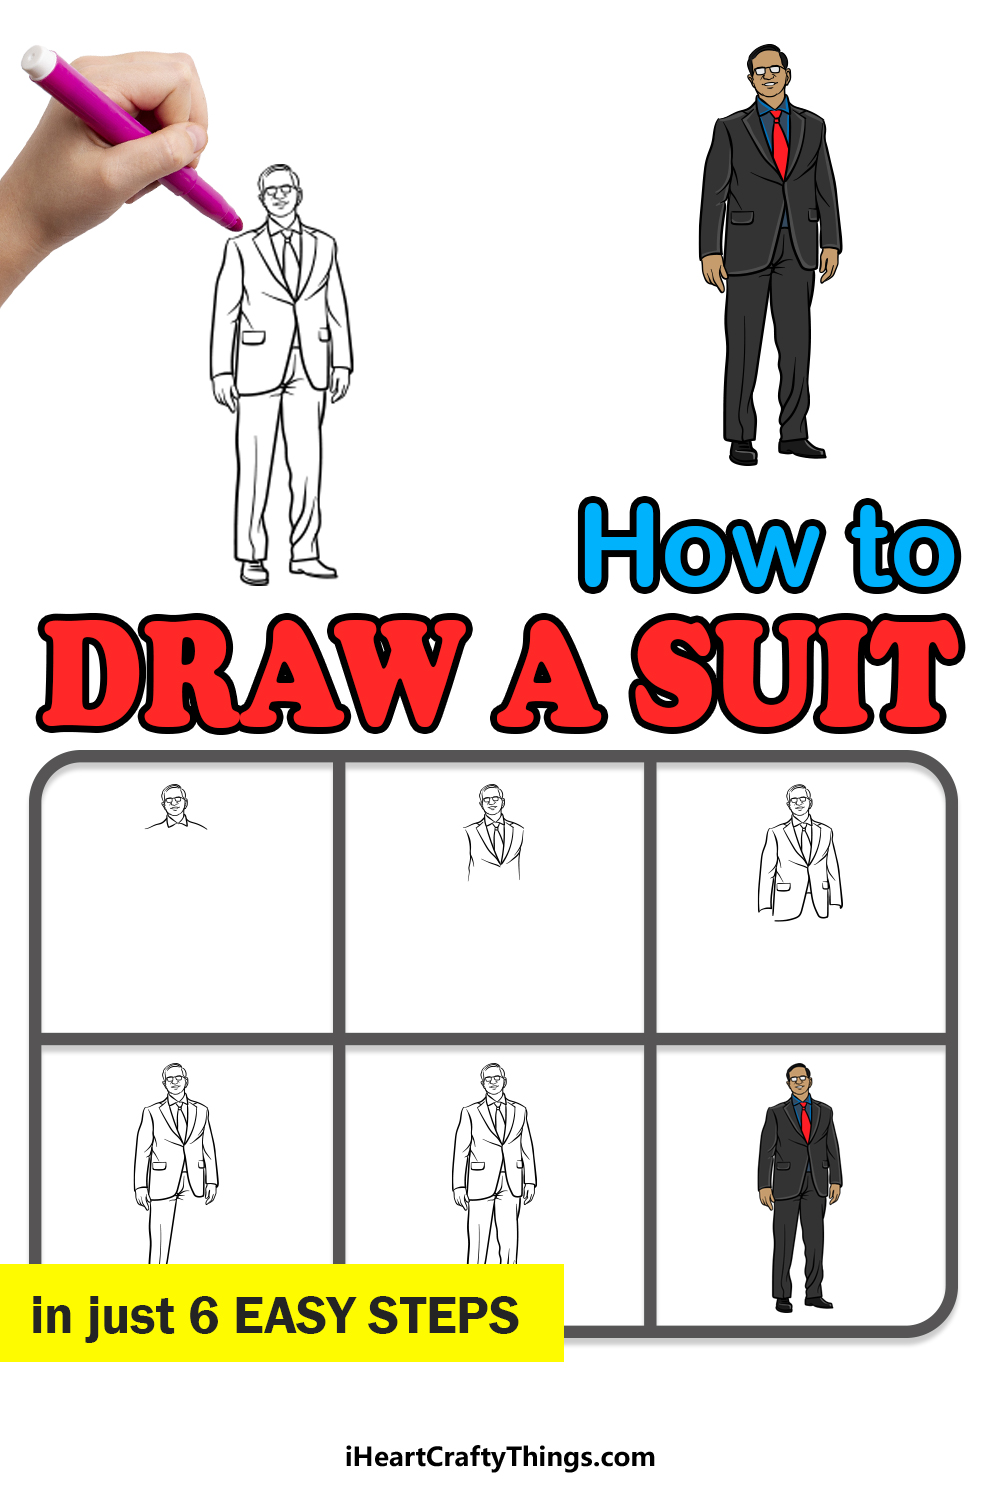 how to draw a suit in 6 easy steps